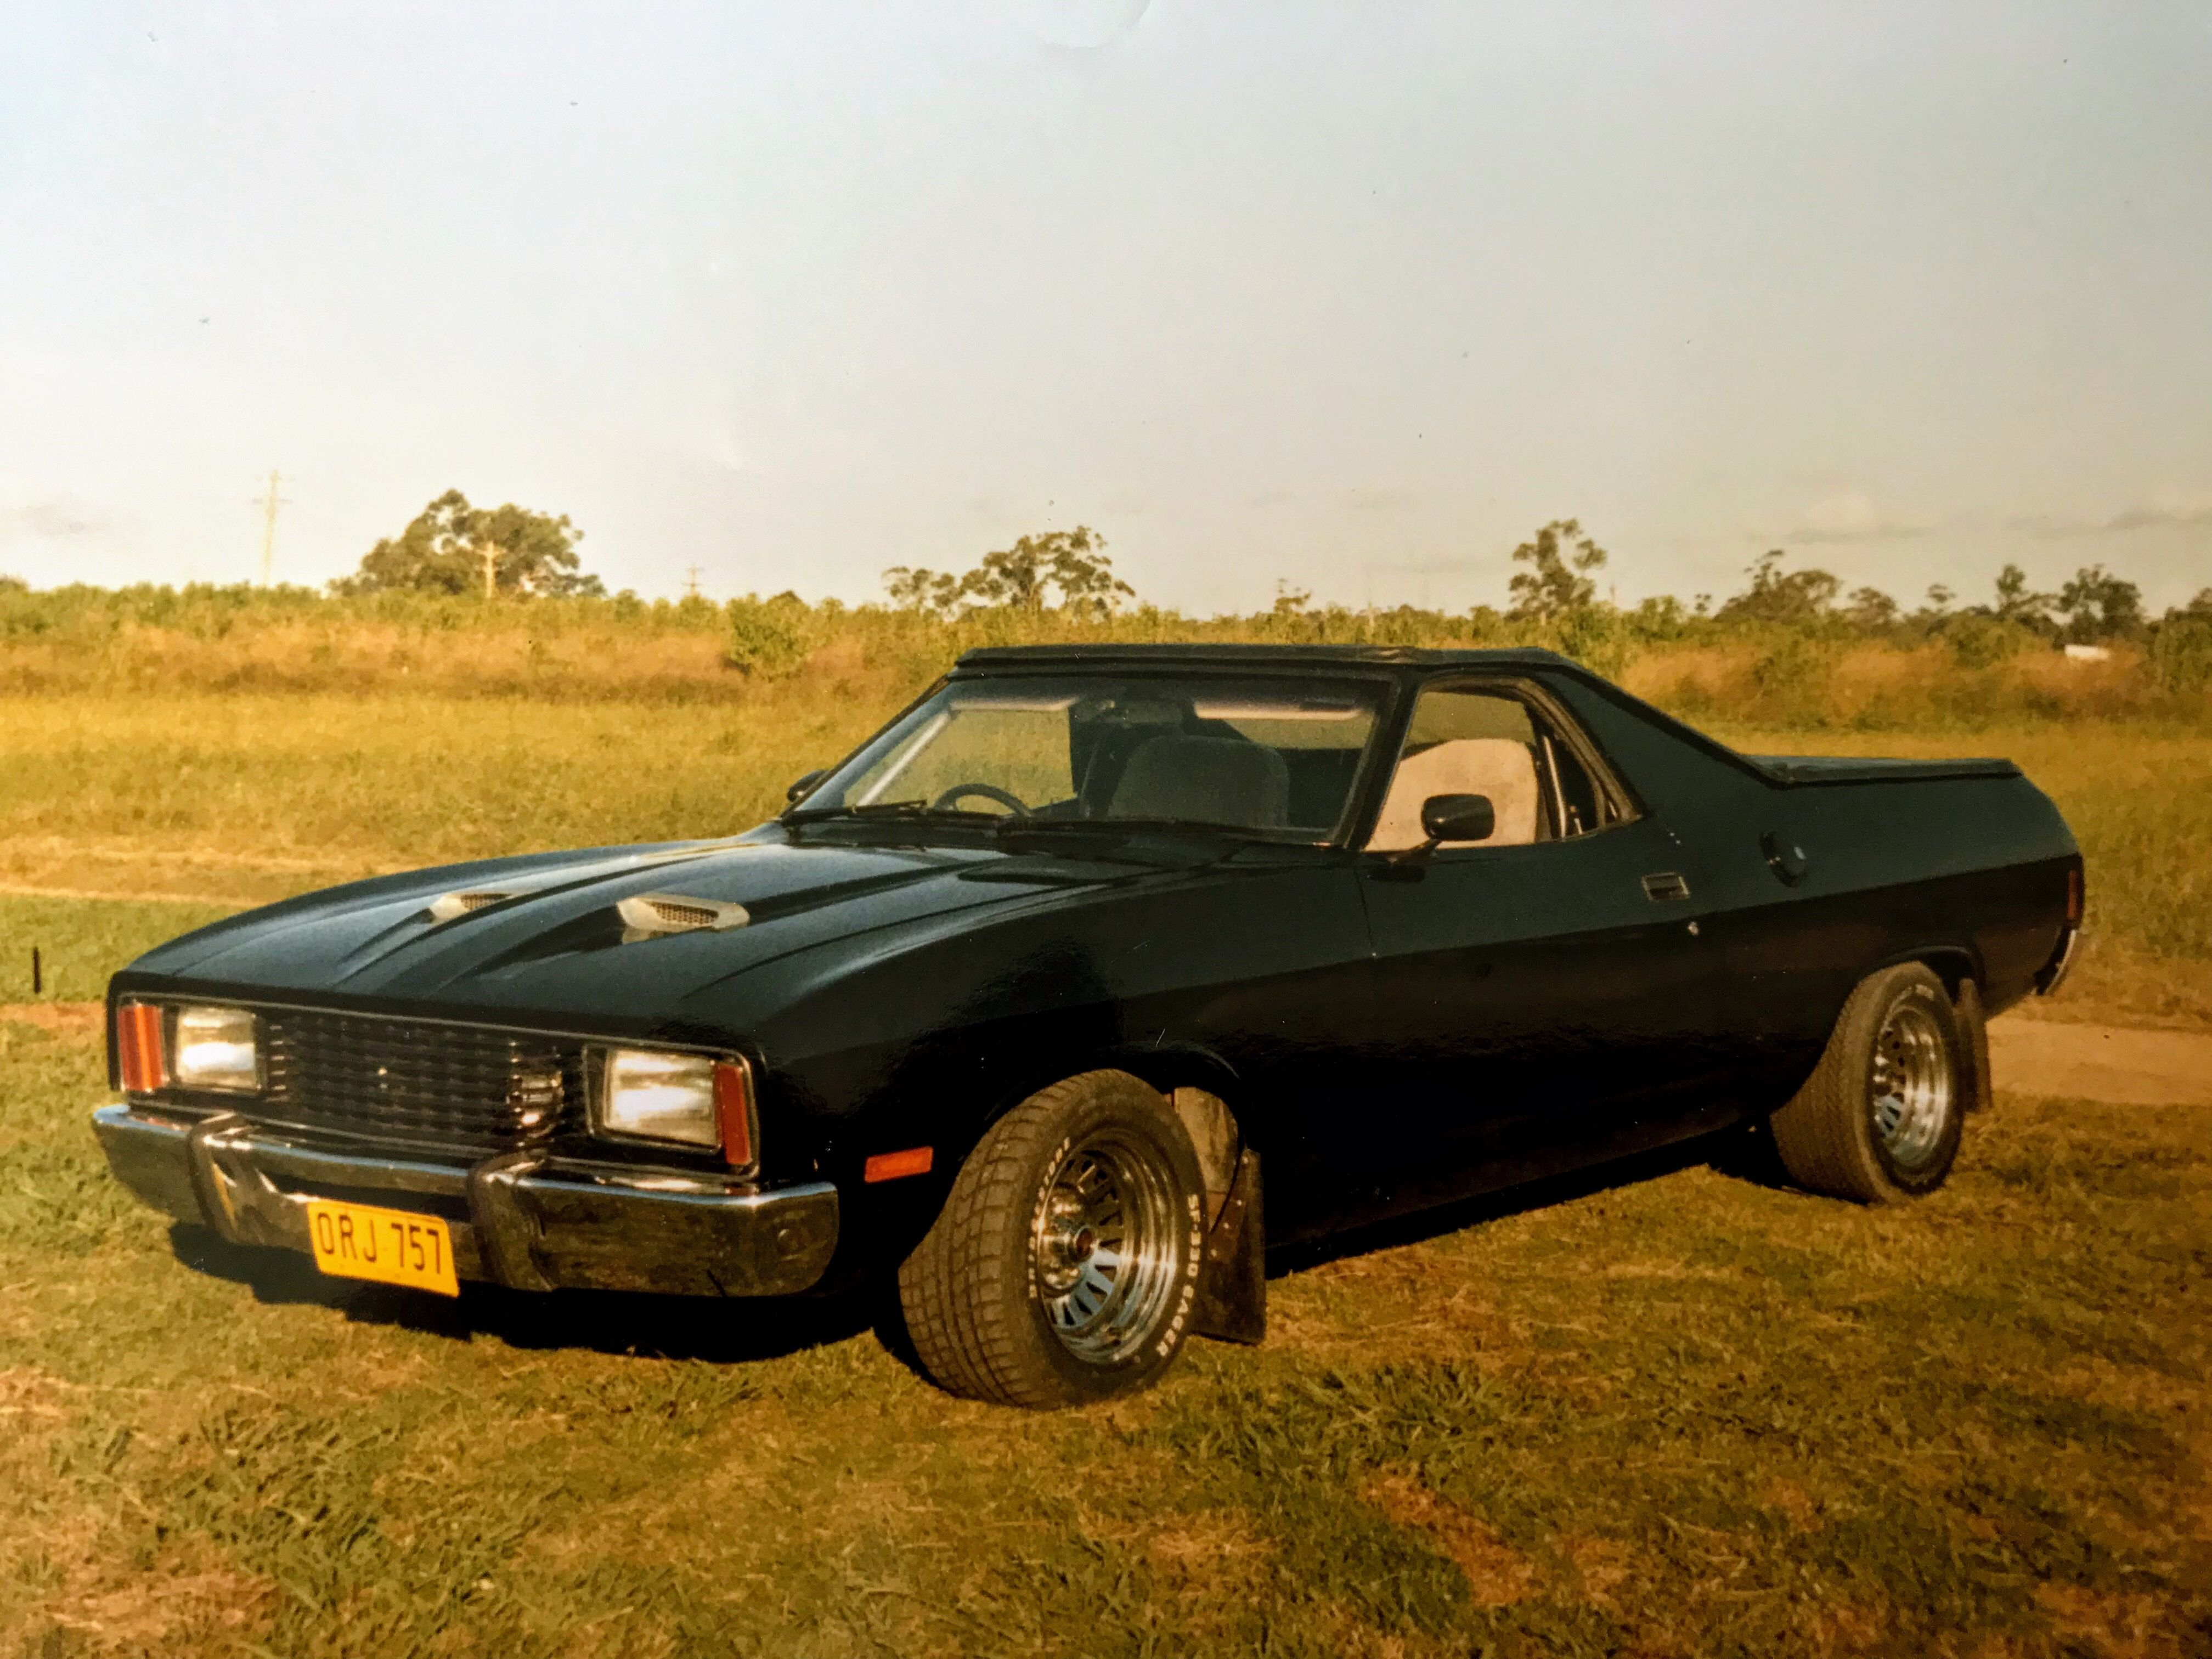 1978 Xc Ford Falcon Convertible Ute Worked 351ci Fmx Auto Originally A Show Panel Van Apparition Bat Out Australian Cars Aussie Muscle Cars Ford Falcon